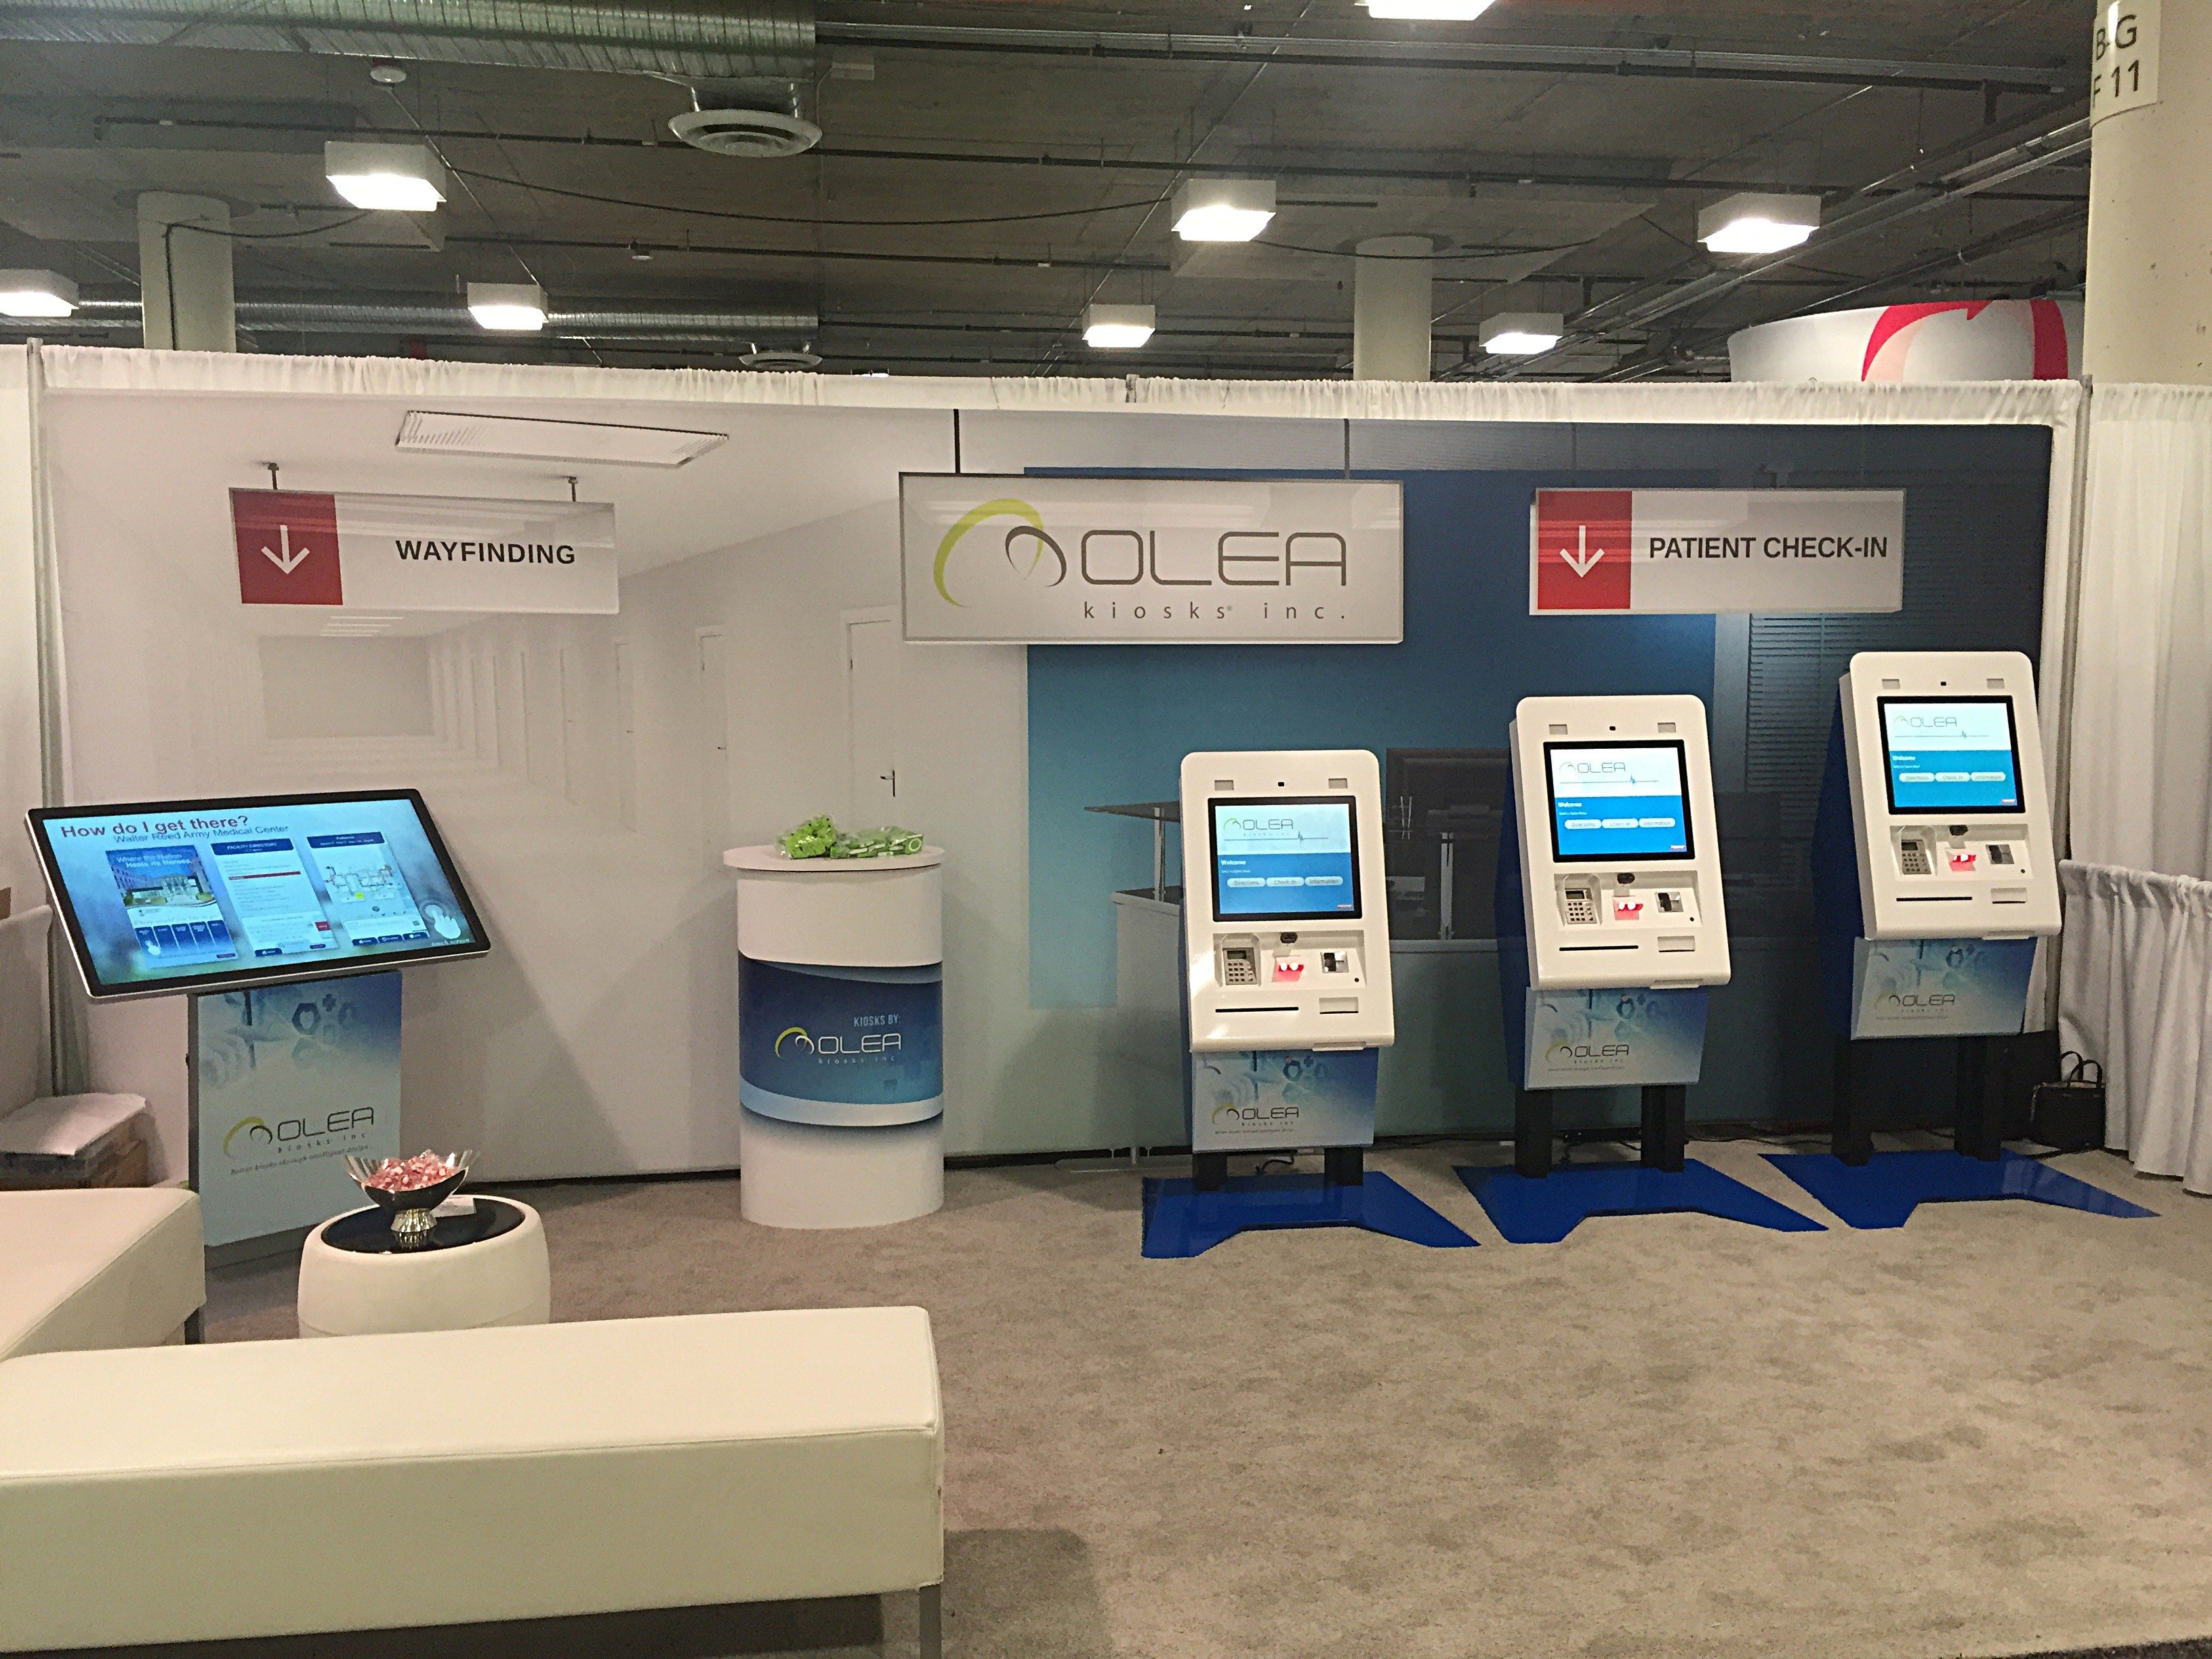 Olea himss booth